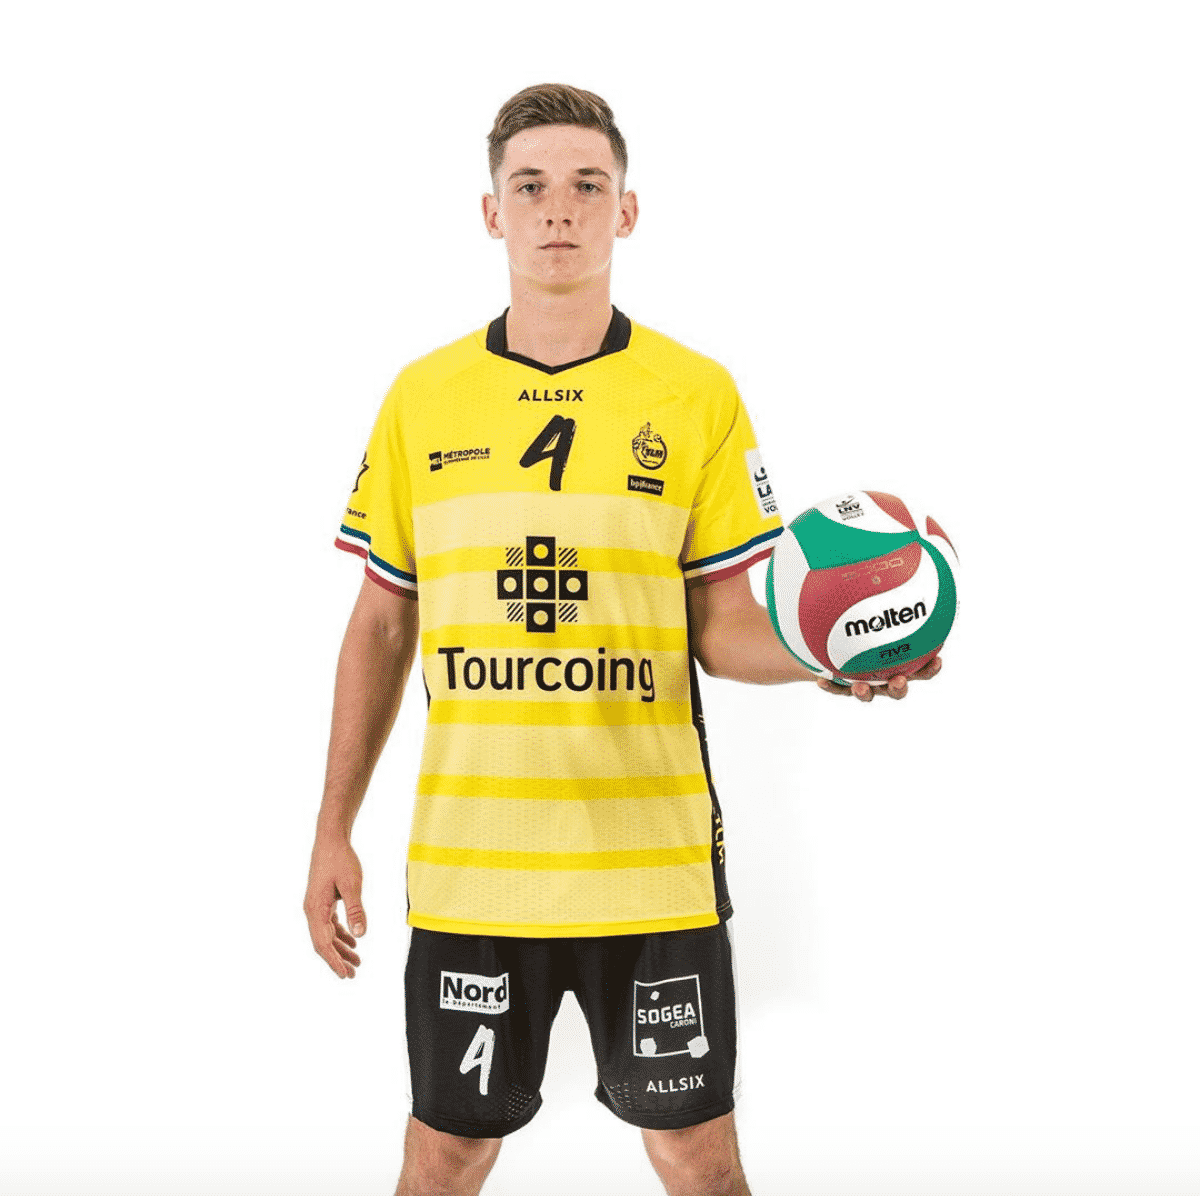 maillot-volley-tlm-allsix-2019-2020-6